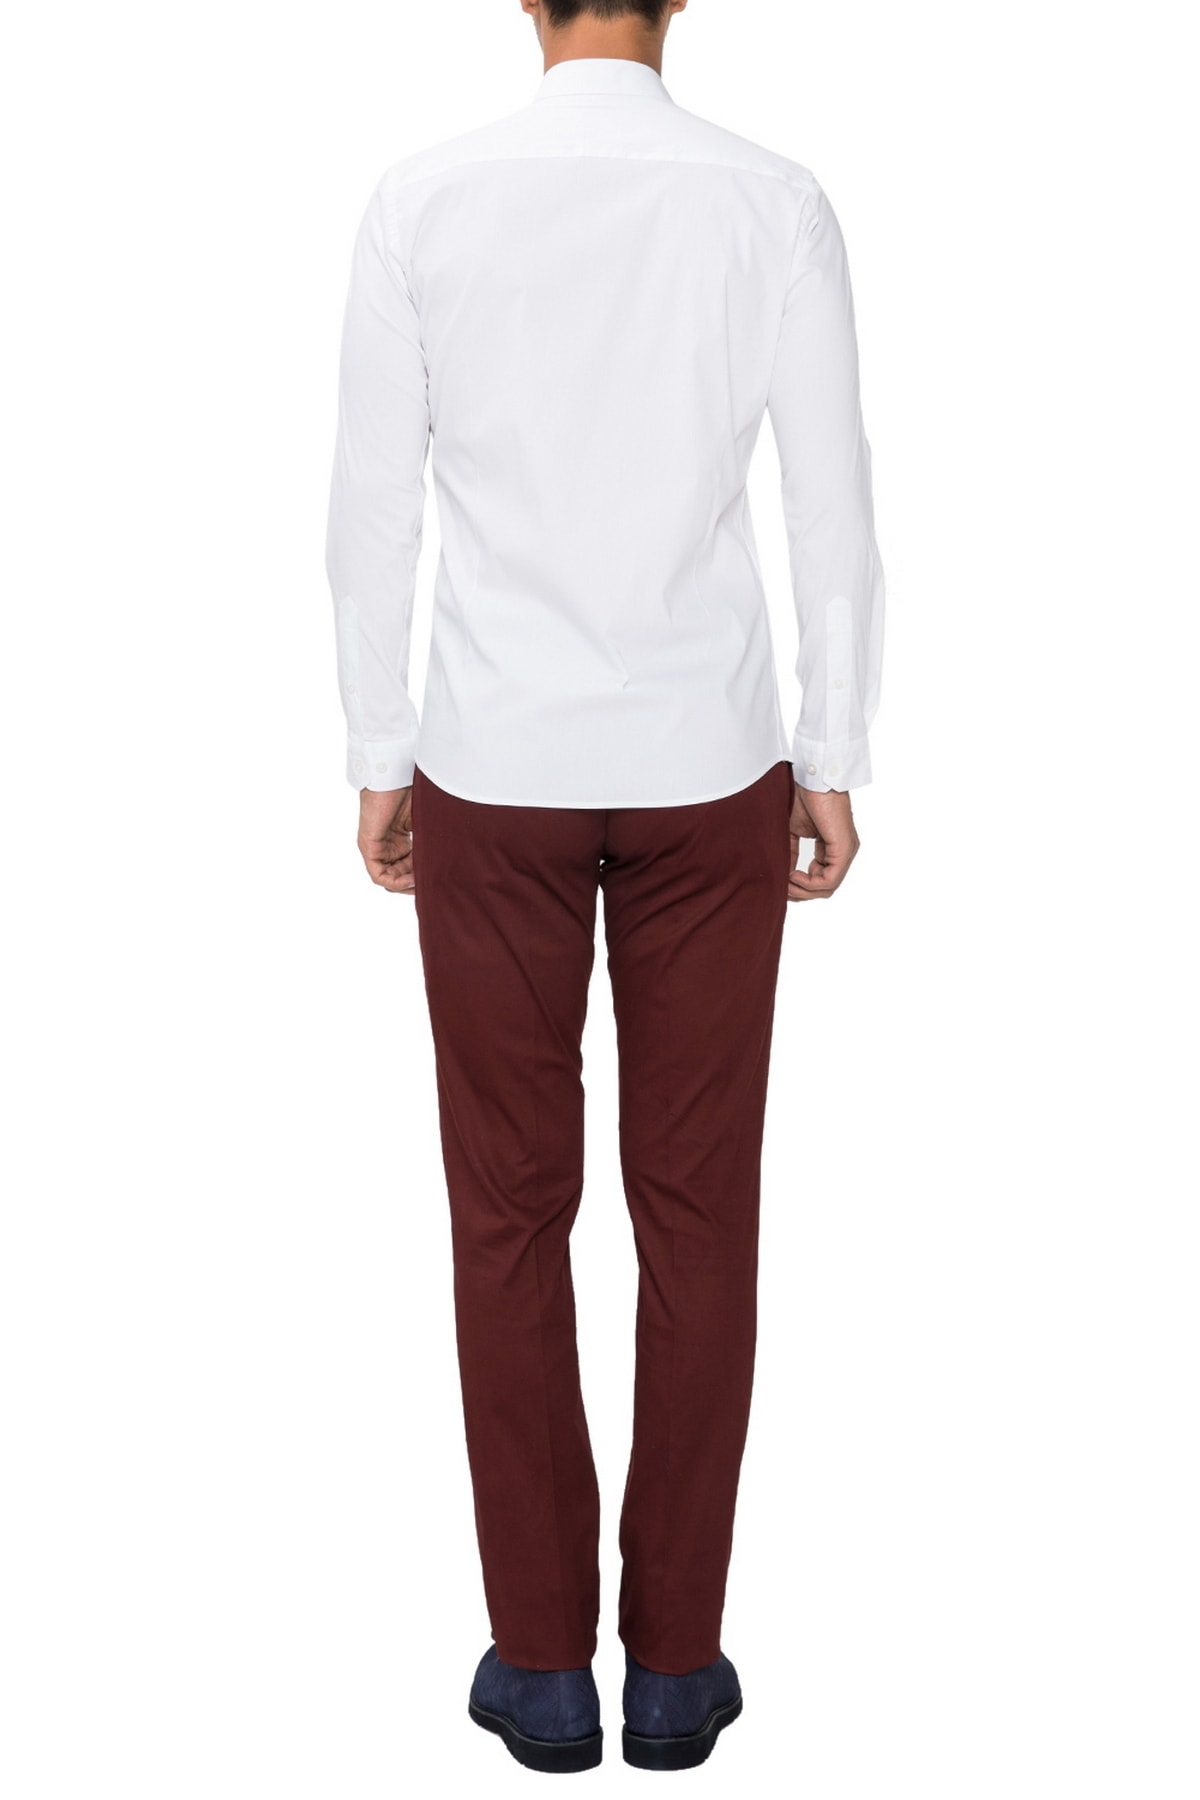 Efor P 1021 Slim Fit Bordo Spor Pantolon 2